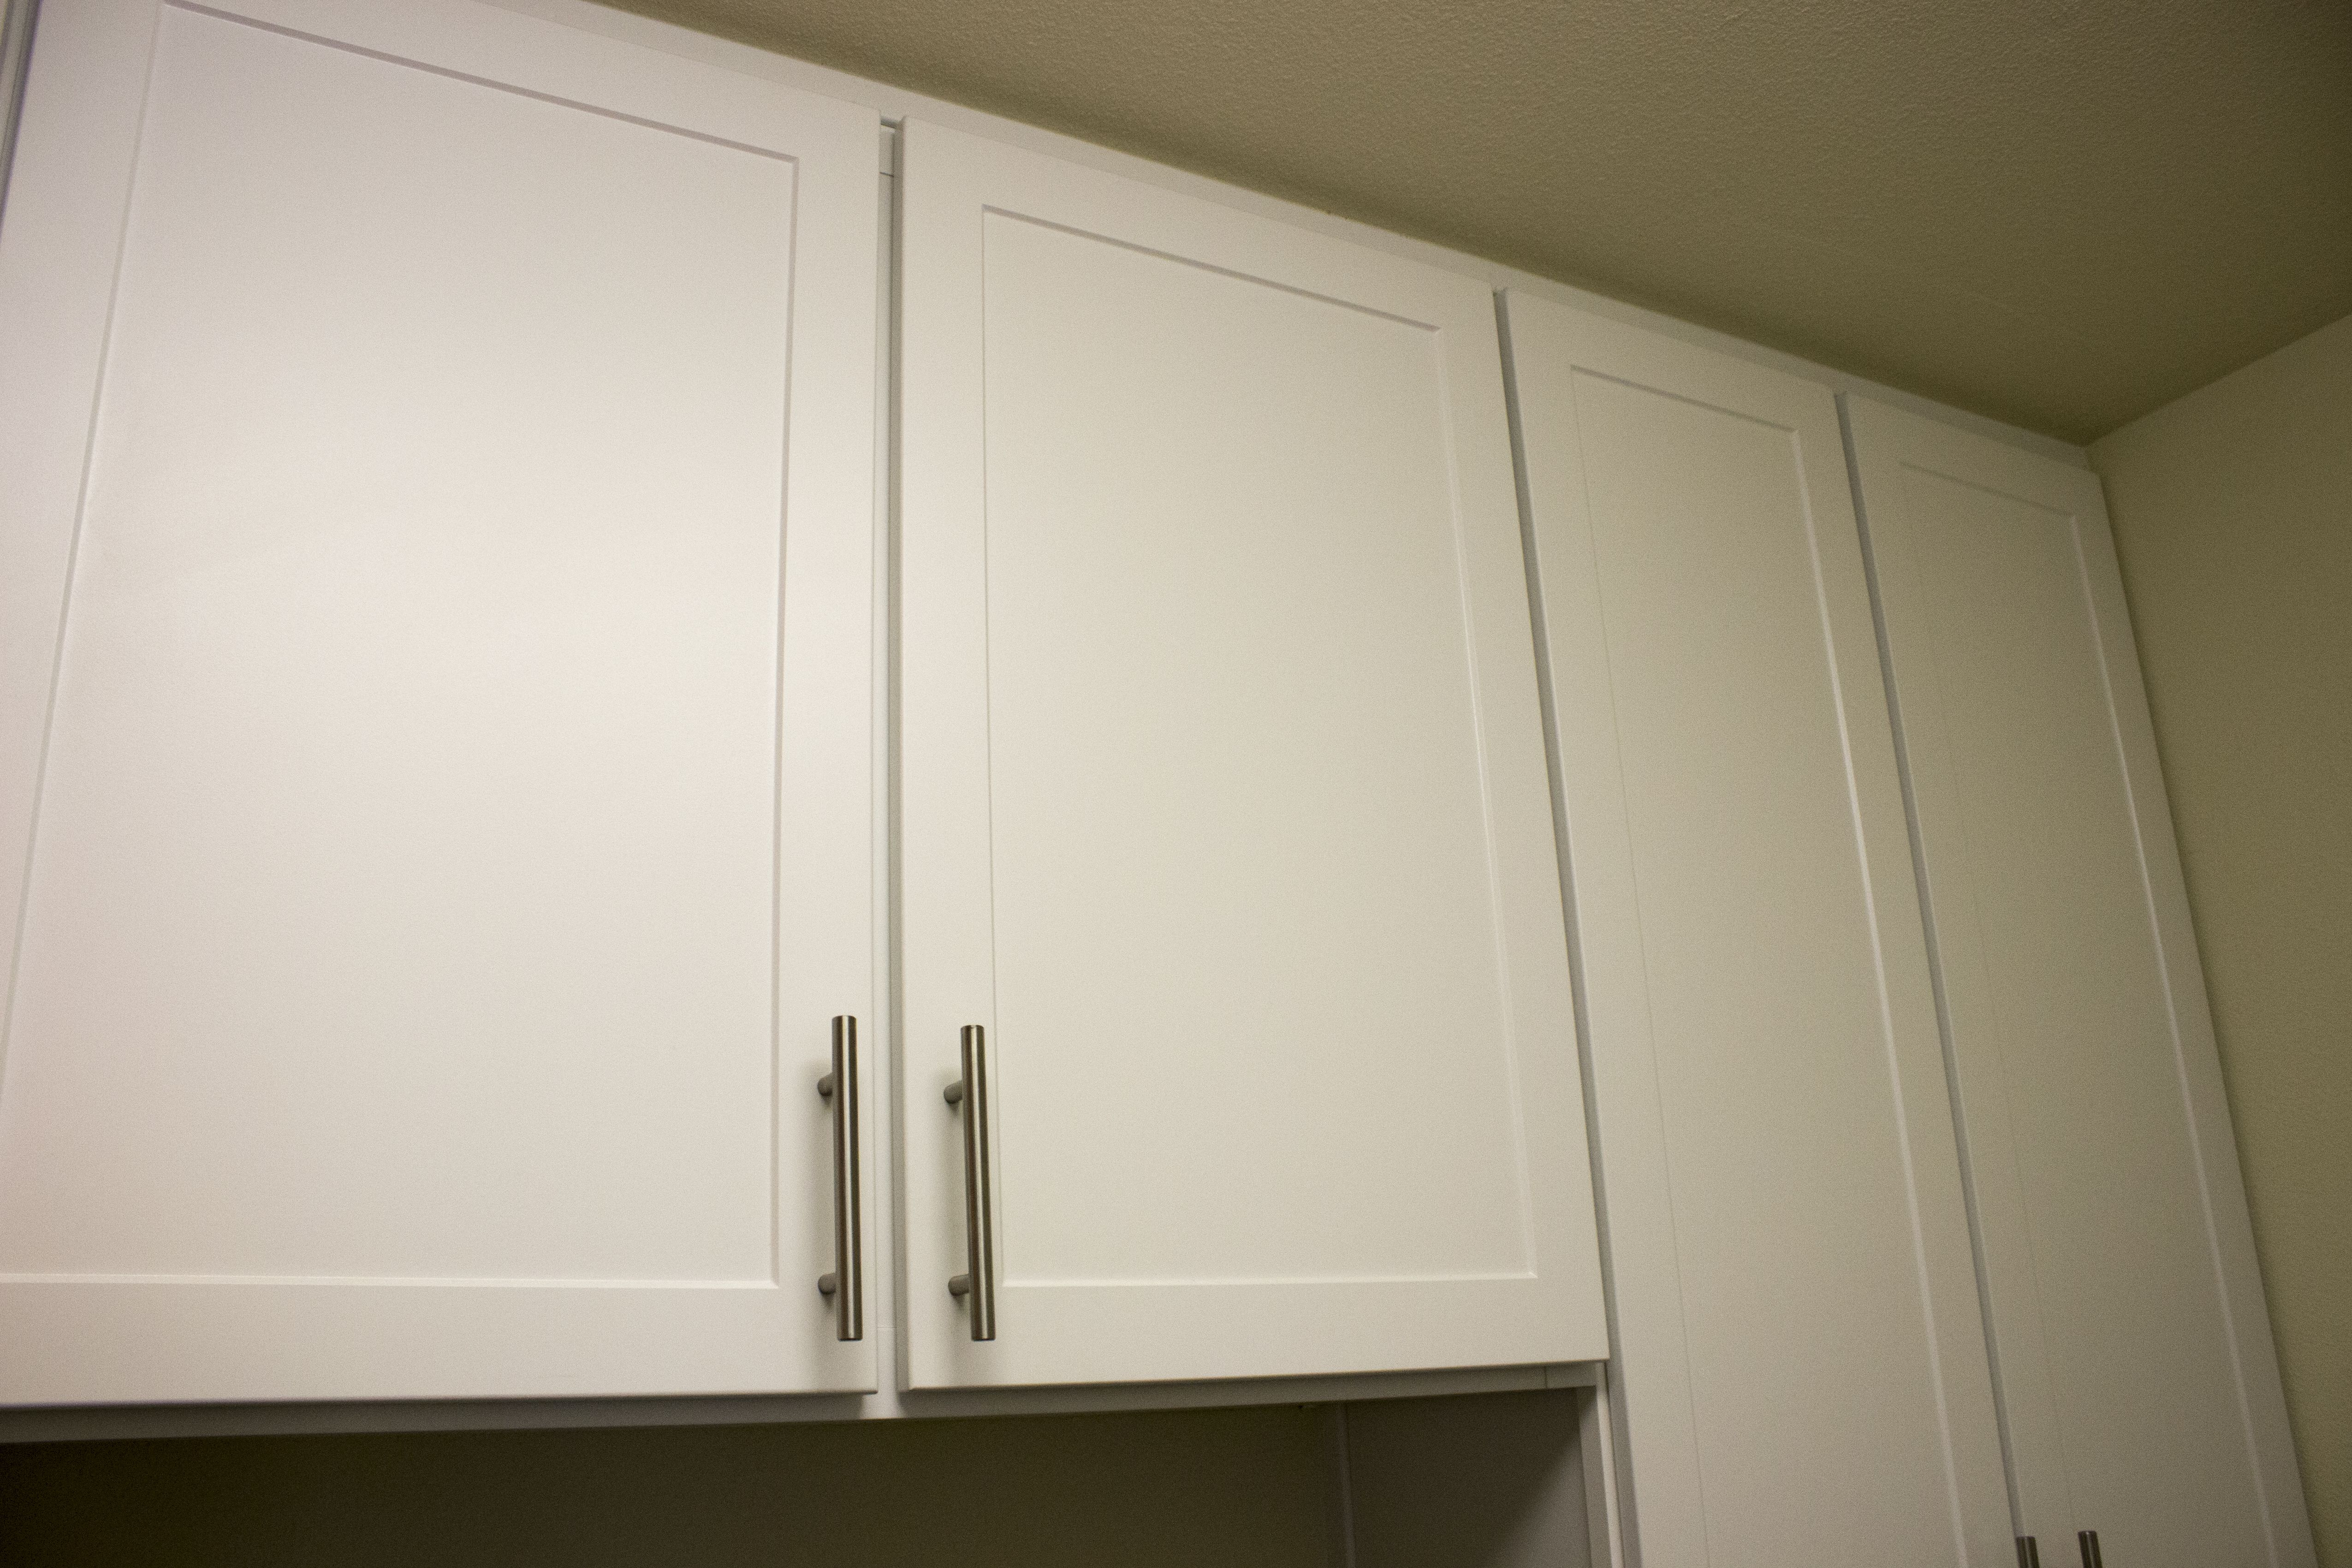 Instructions On How To Gel Stain Over Painted Cabinets Ehow Staining Furniture Painting Cabinets Gel Stain